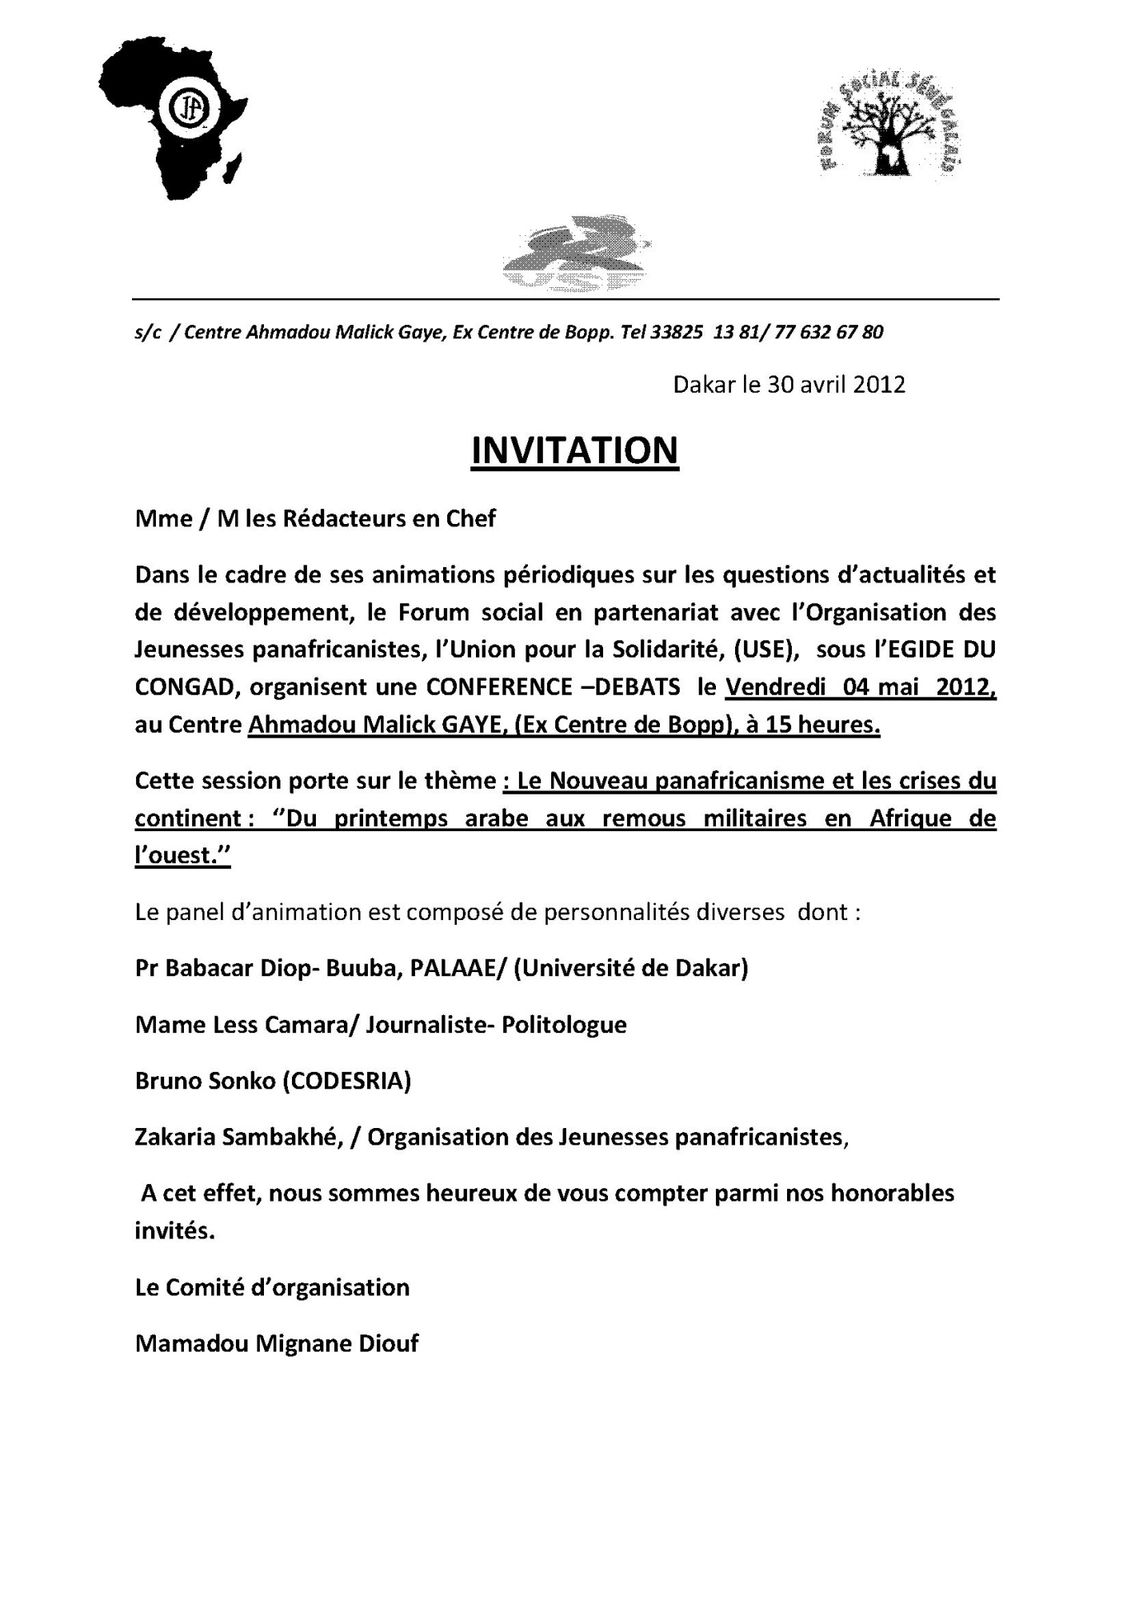 INVITATION-PRESSE-SESSION-DU-04-MAI.JPG